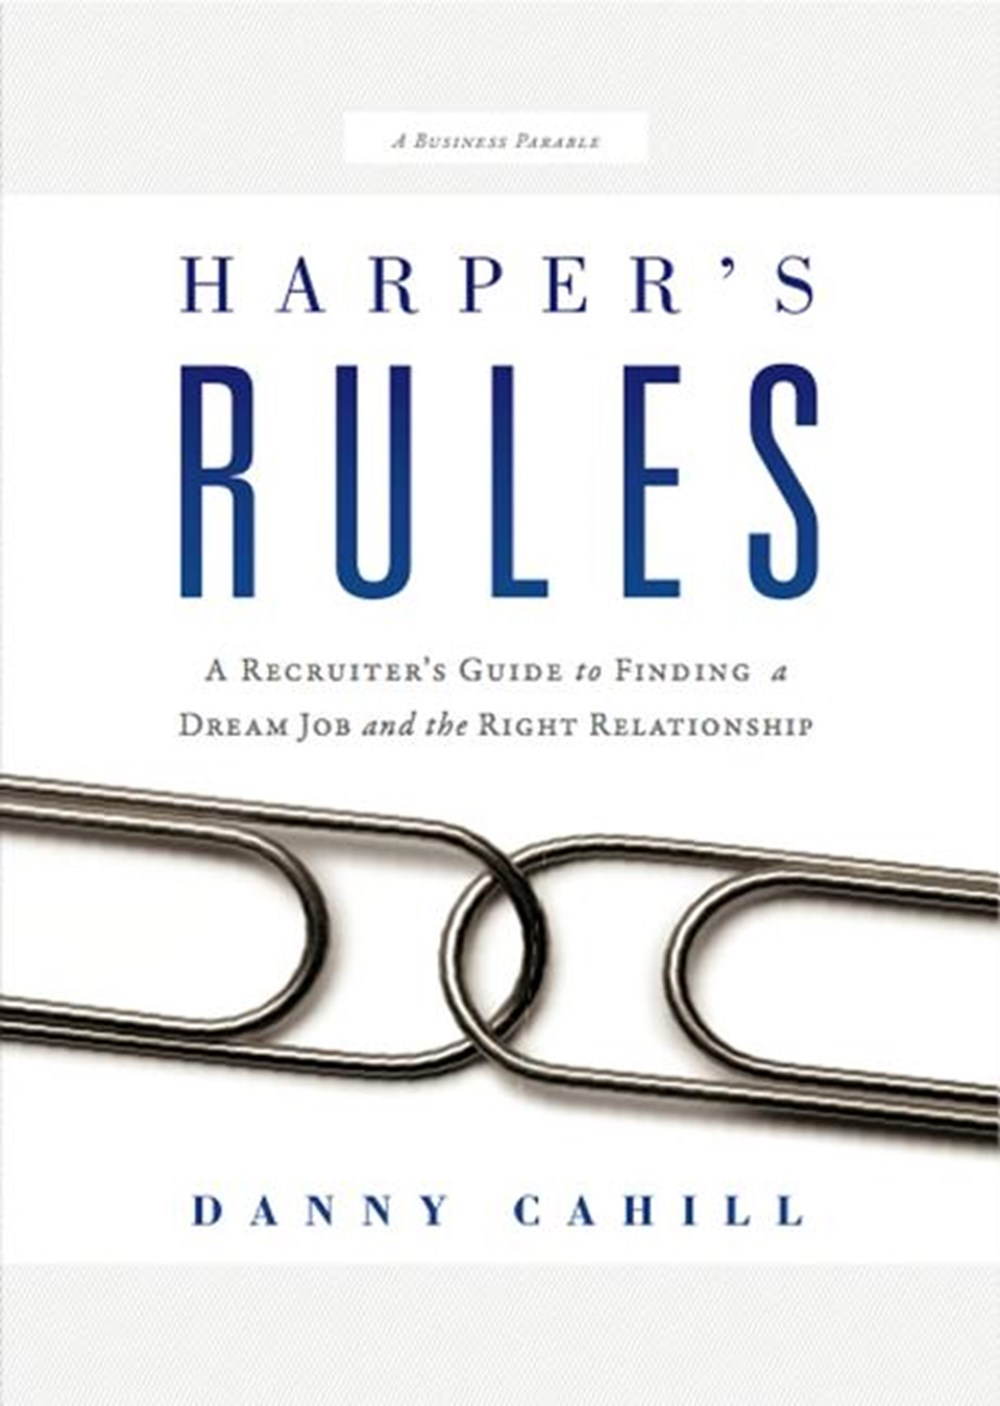 Harper's Rules A Recruiter's Guide to Finding a Dream Job and the Right Relationship: A Business Par